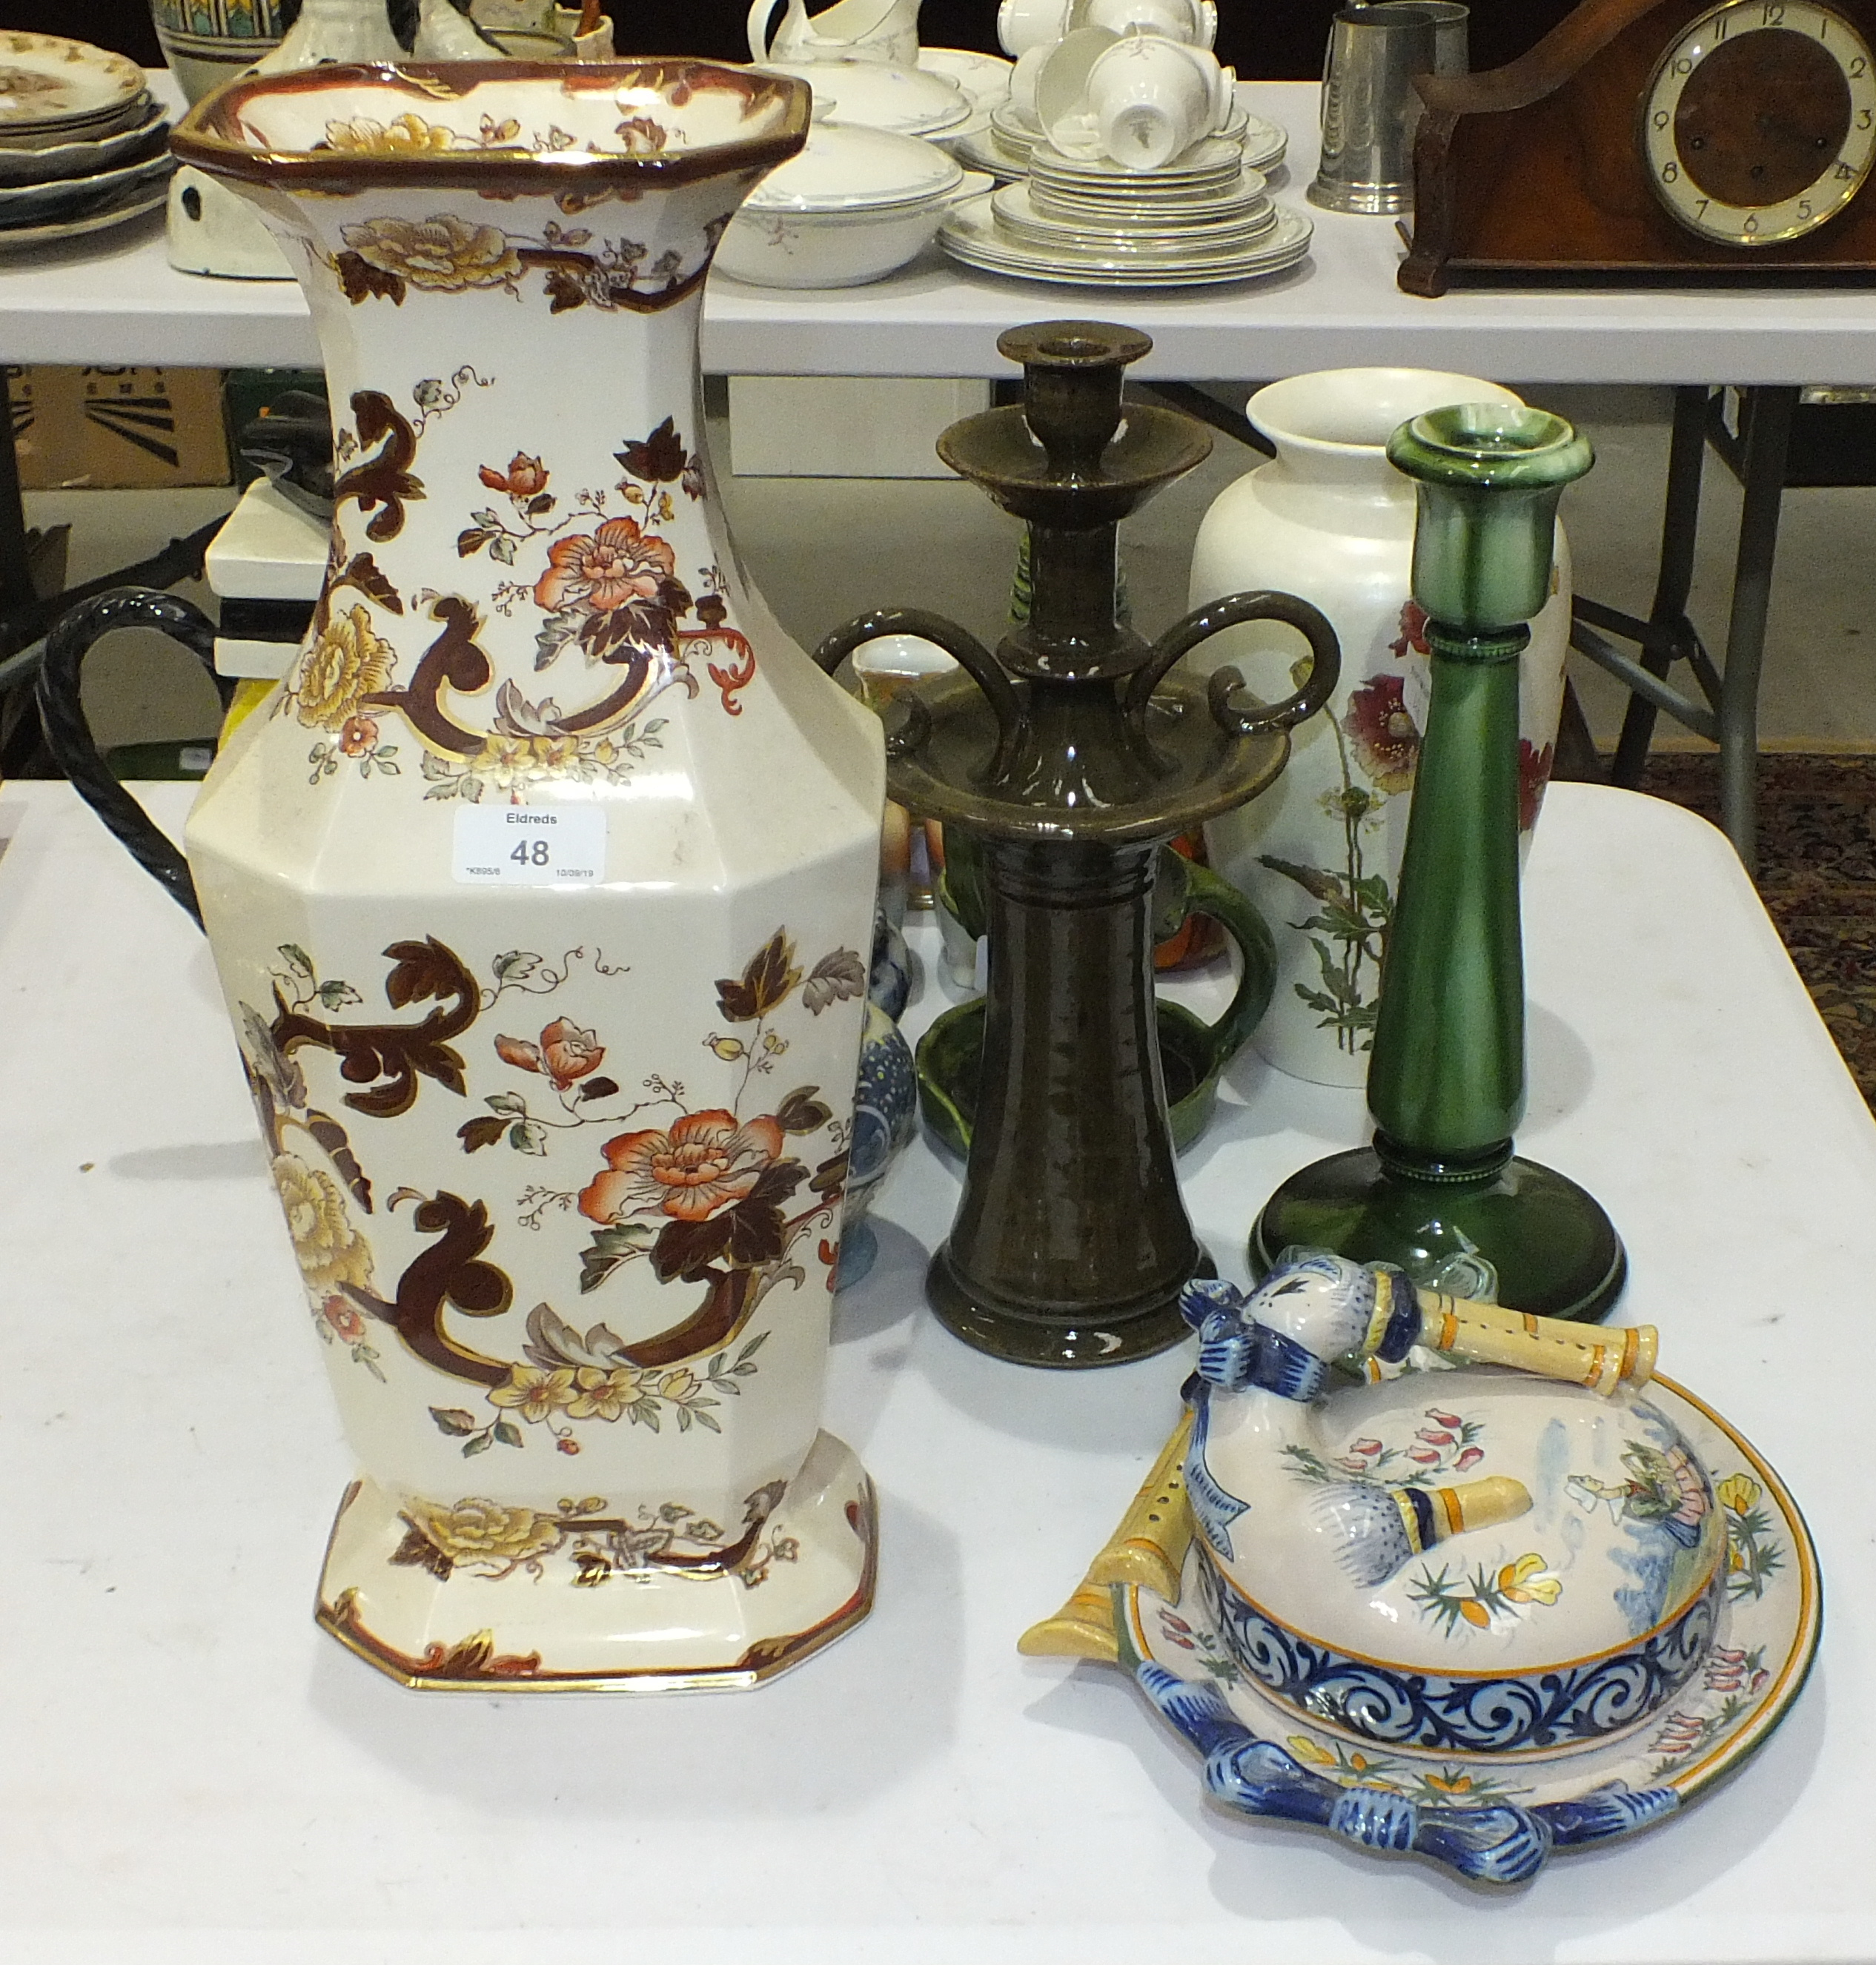 Lot 48 - A Poole Pottery baluster vase decorated with poppies, 26cm high, a ceramic Liquorice Allsort teapot,